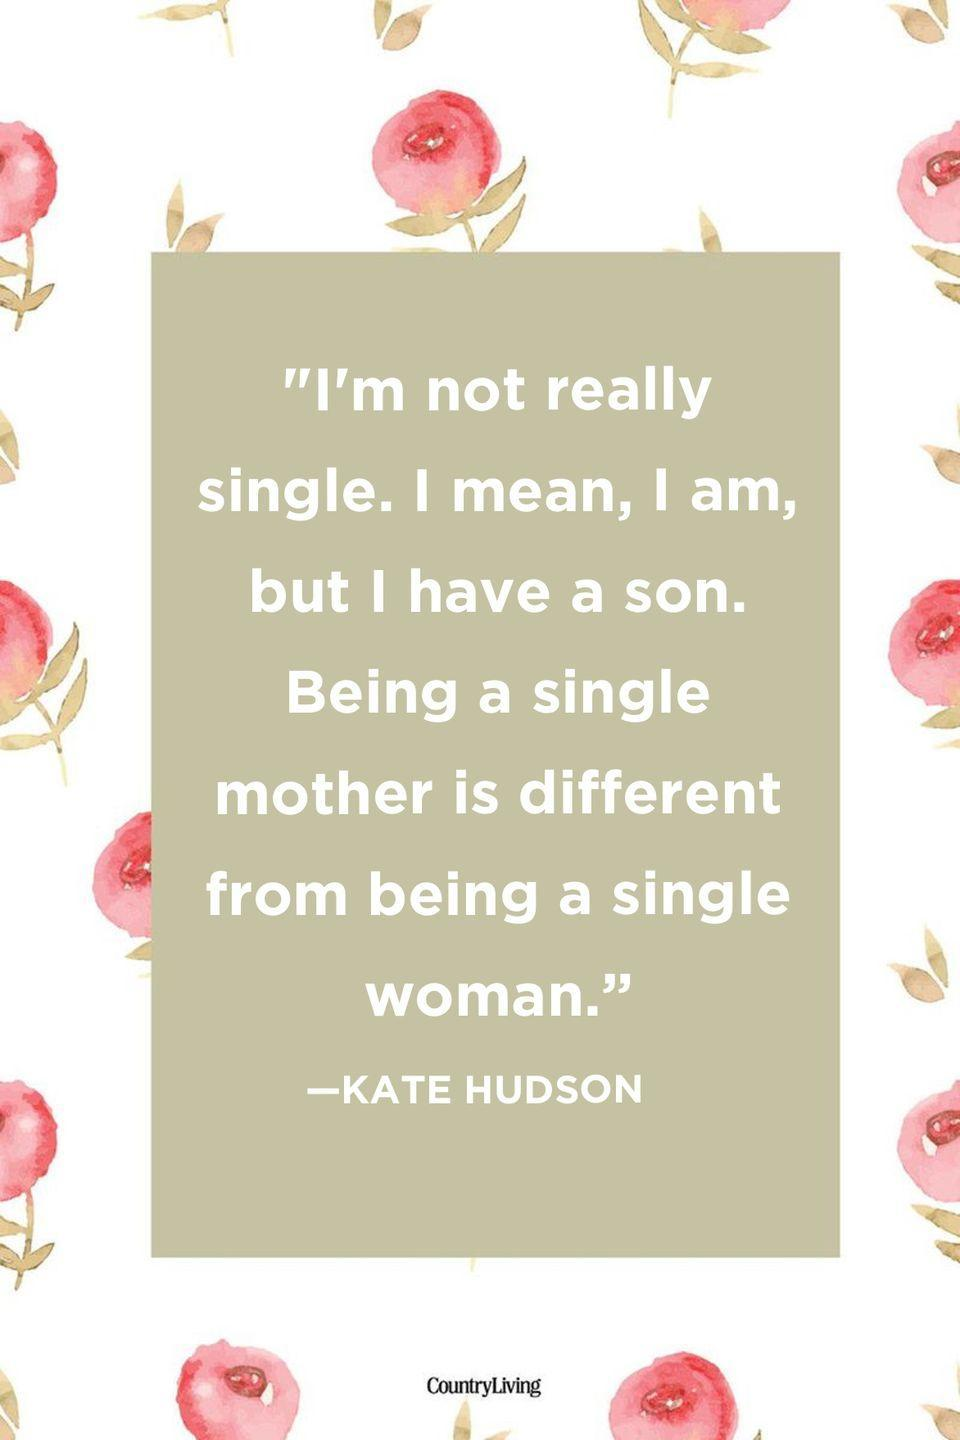 "<p>""I'm not really single. I mean, I am, but I have a son. Being a single mother is different from being a single woman.""</p>"